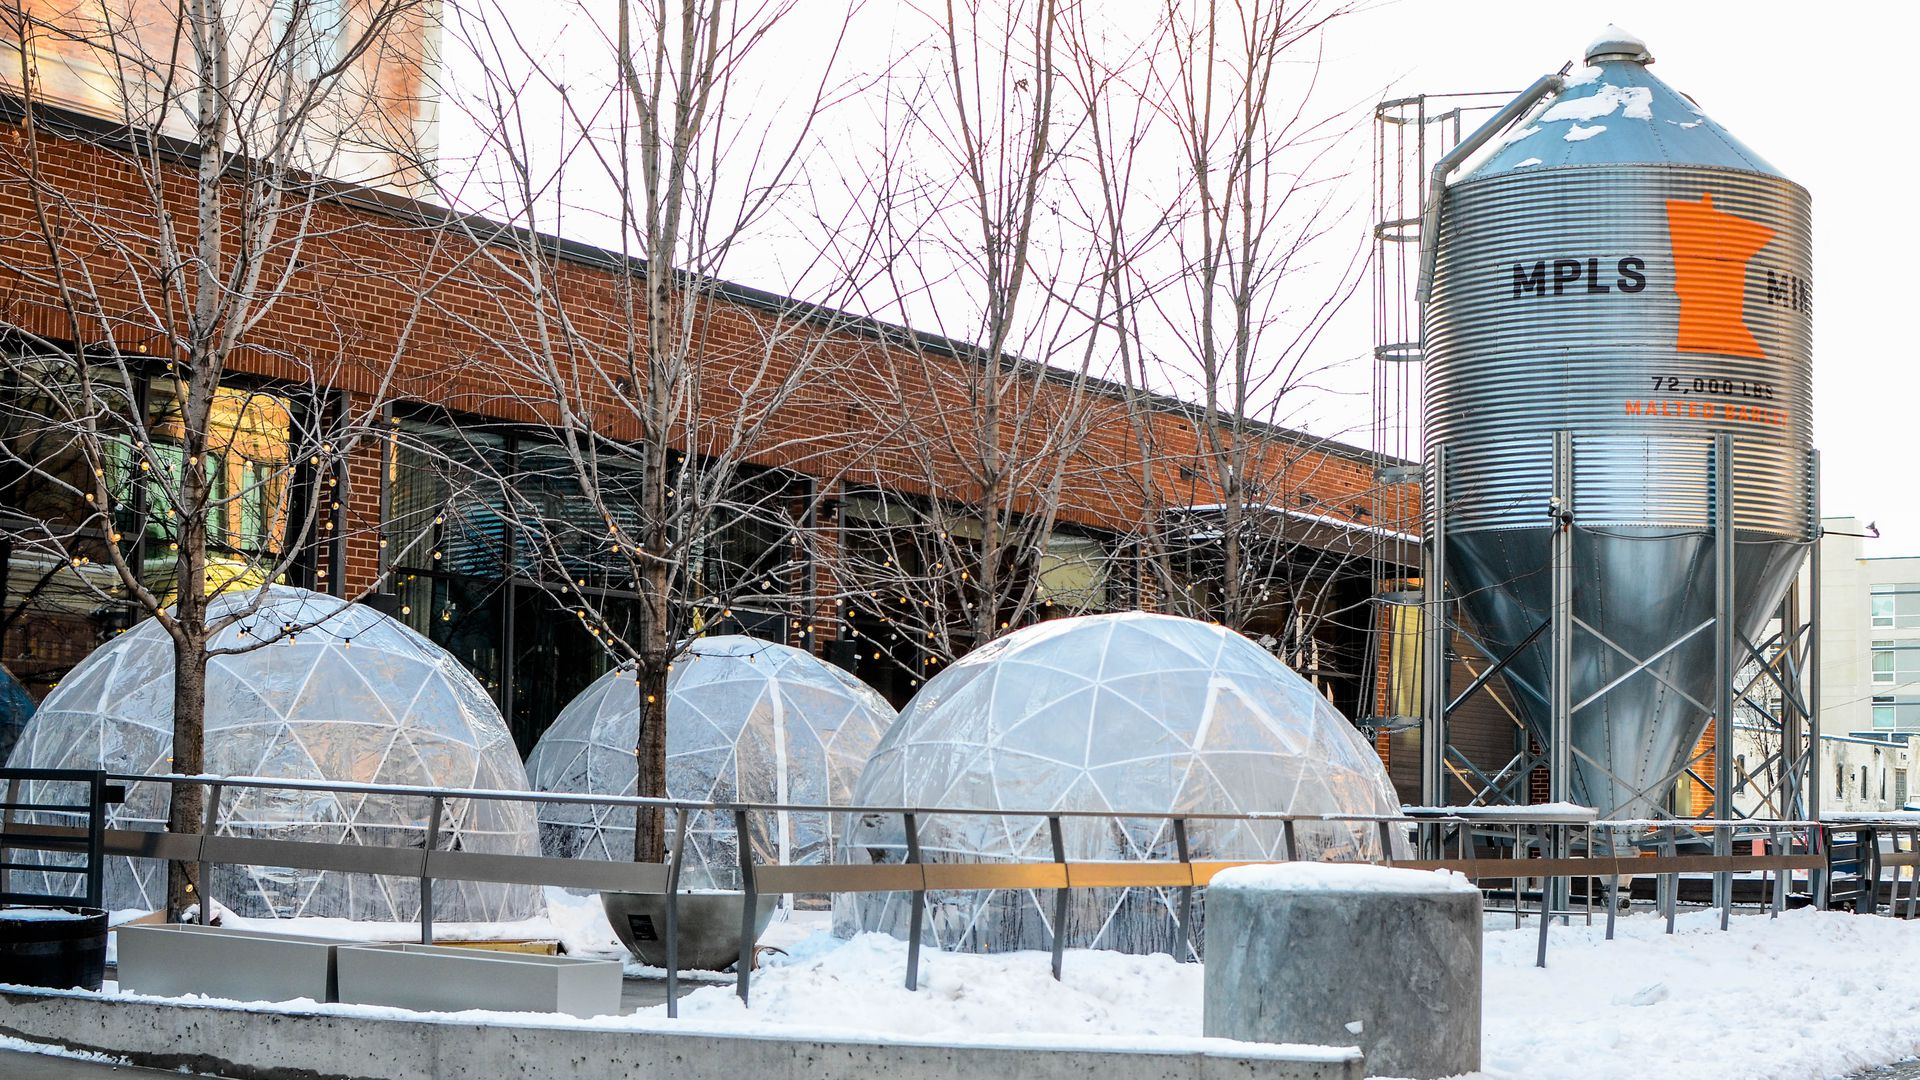 large clear domes on restaurant patio